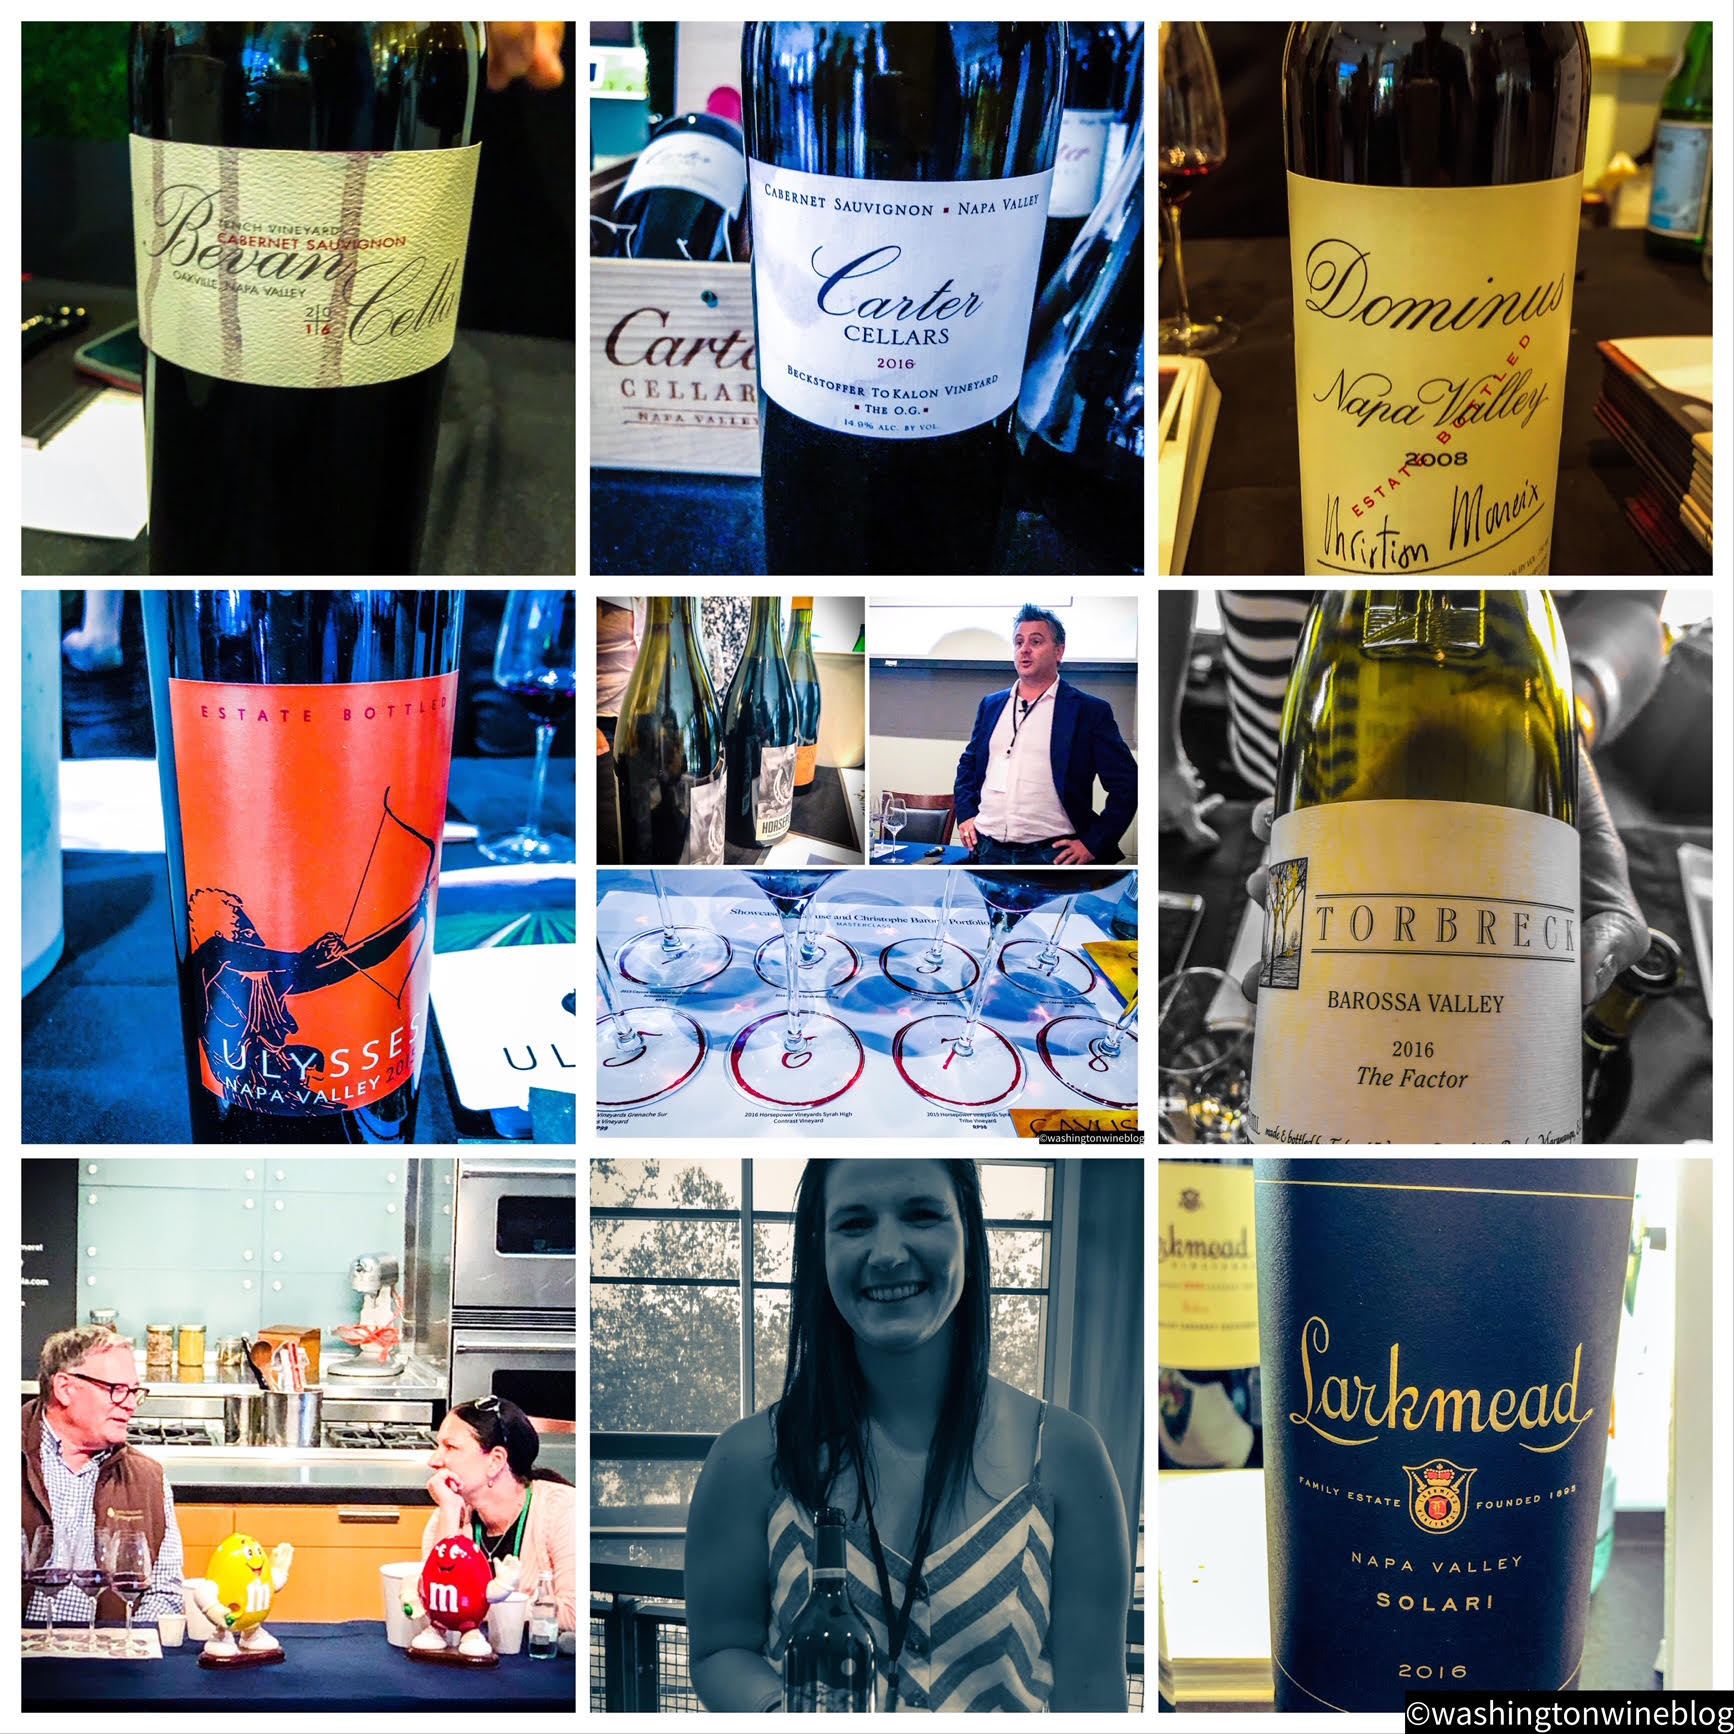 It was an epic experience taking in many of the world's best wines at the Wine Advocate's Matter of Taste event in Napa.